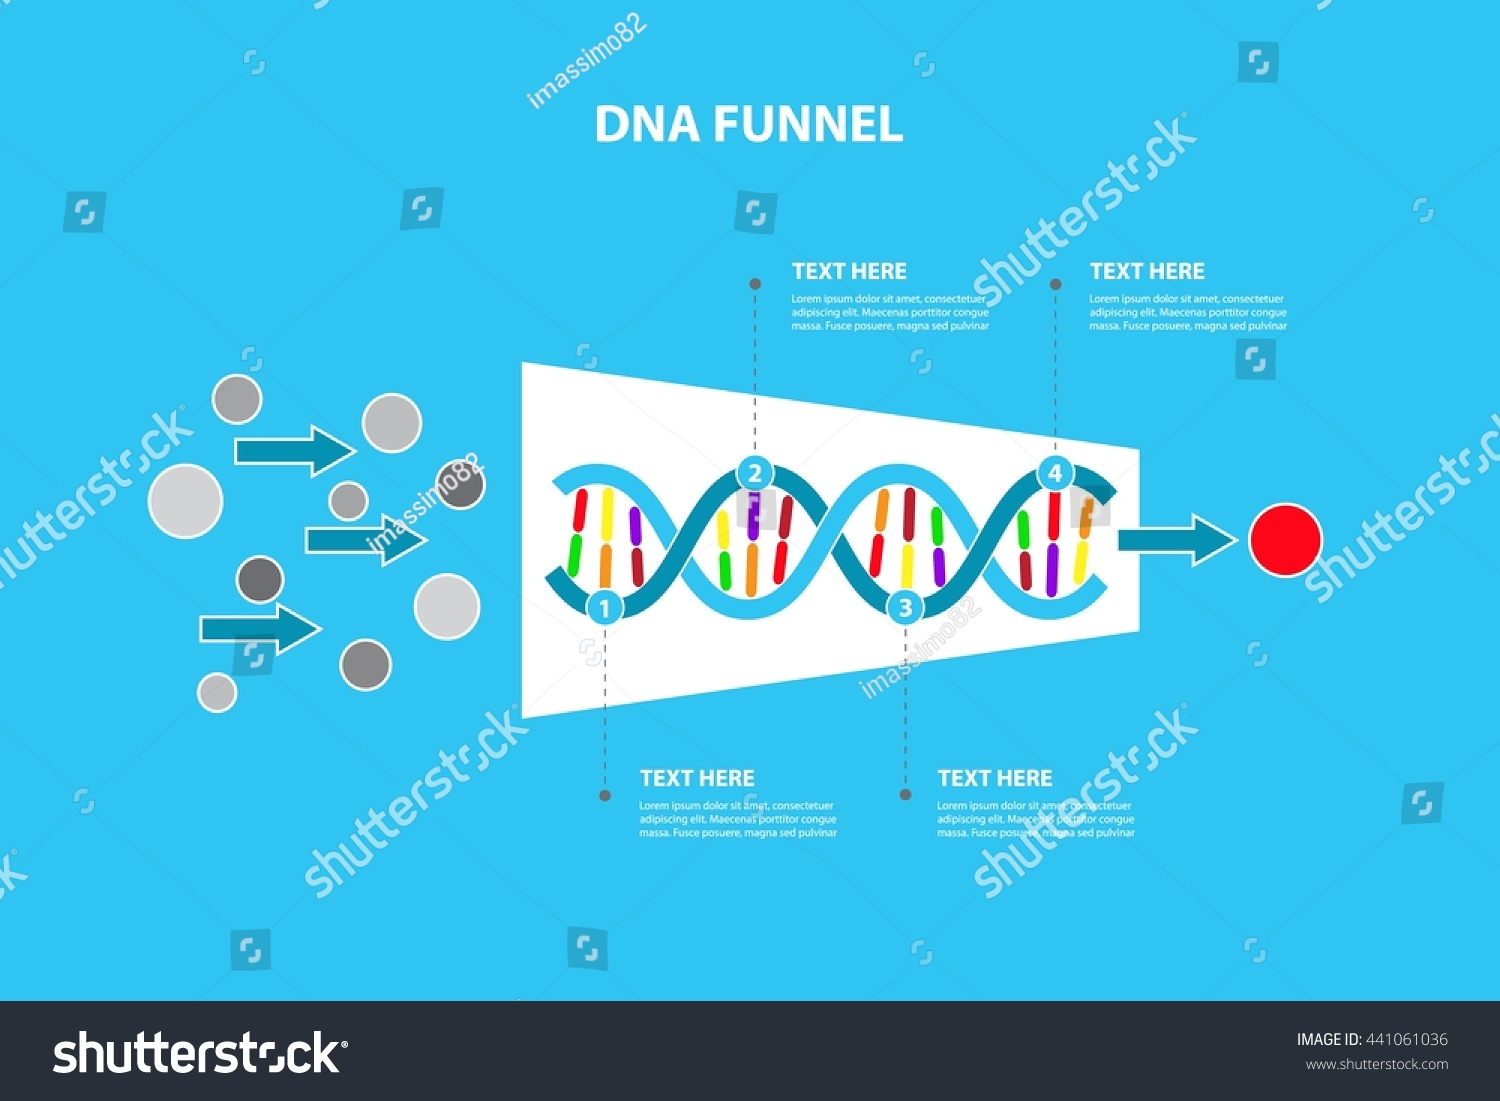 Horizontal Funnel Dna Timeline Process Template Stock Vector ...